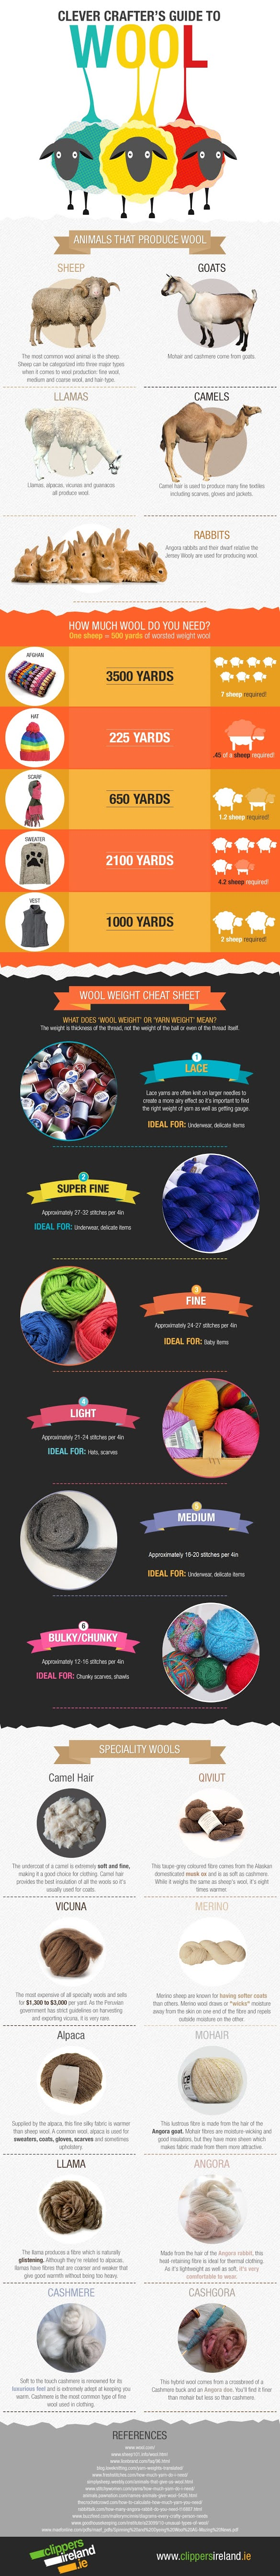 Clever Crafter's Guide To Wool #infographic #Crafter's Guide #Crafting #Clever Crafter's #Wool Tips